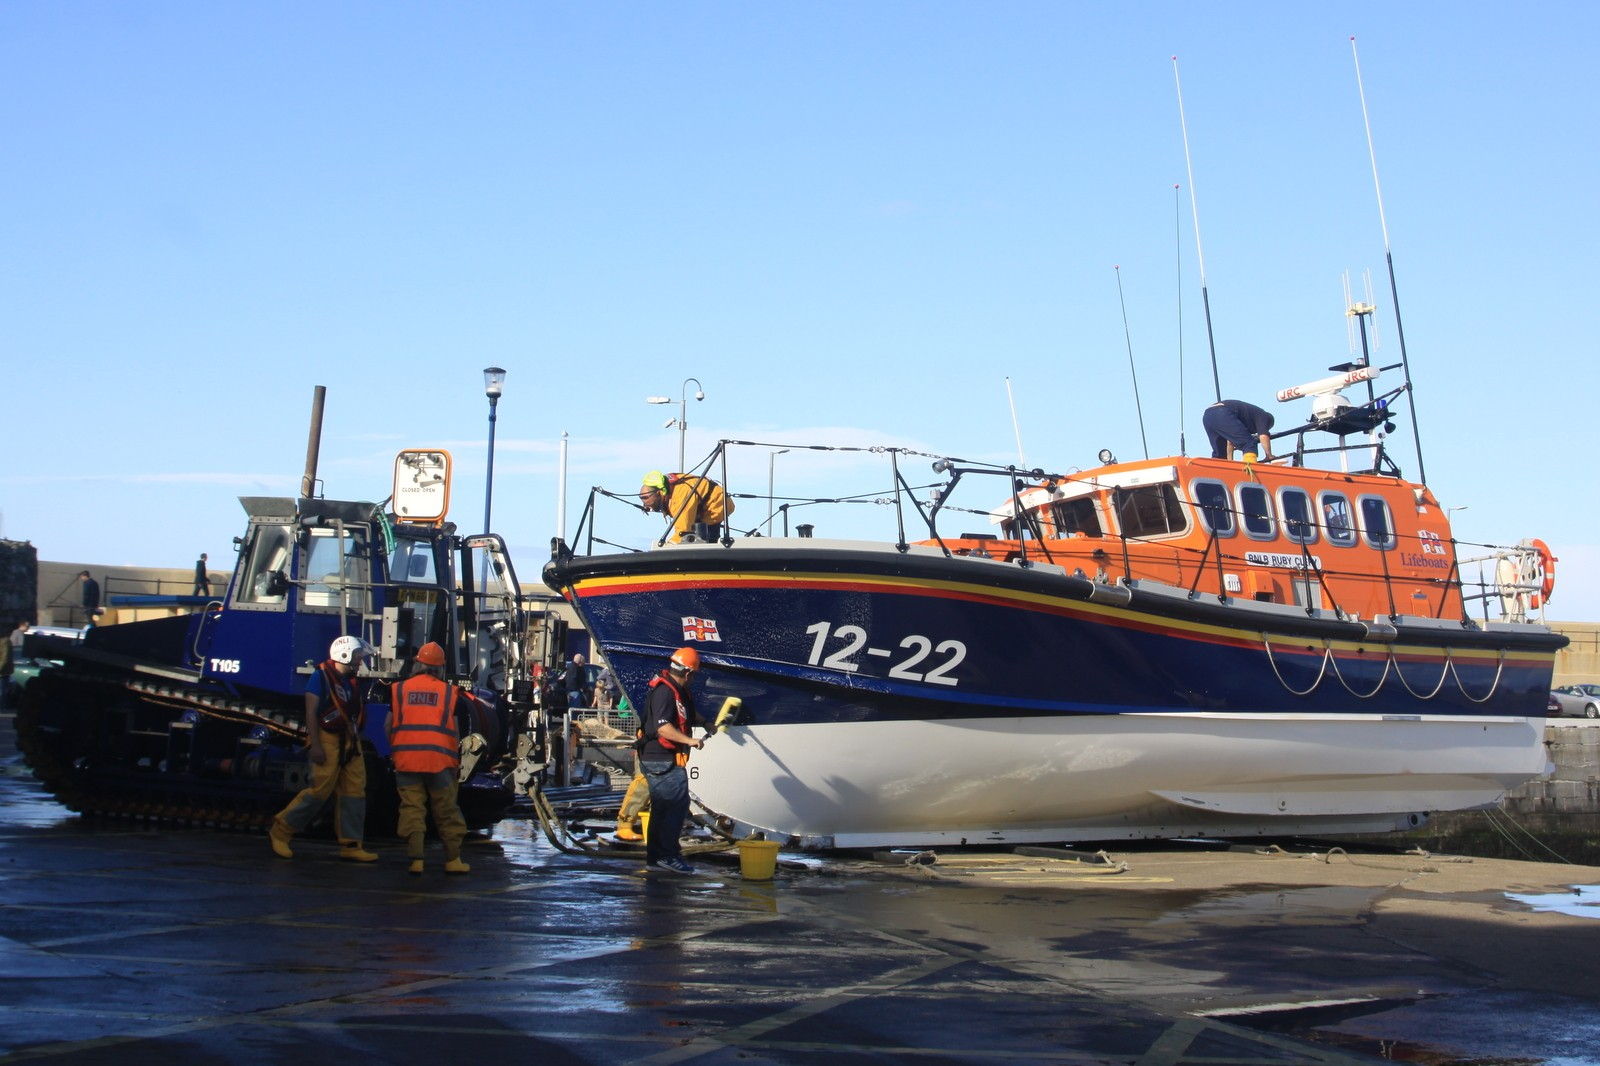 Peel Lifeboat Ruby Clery's September return to Peel after a summer-long repair to her hull in the south of England. She is seen entering the Bay for the first time, passing her summer replacement, the Mary Margaret, up the ramp and on station again on the breakwater. By Tony Faragher